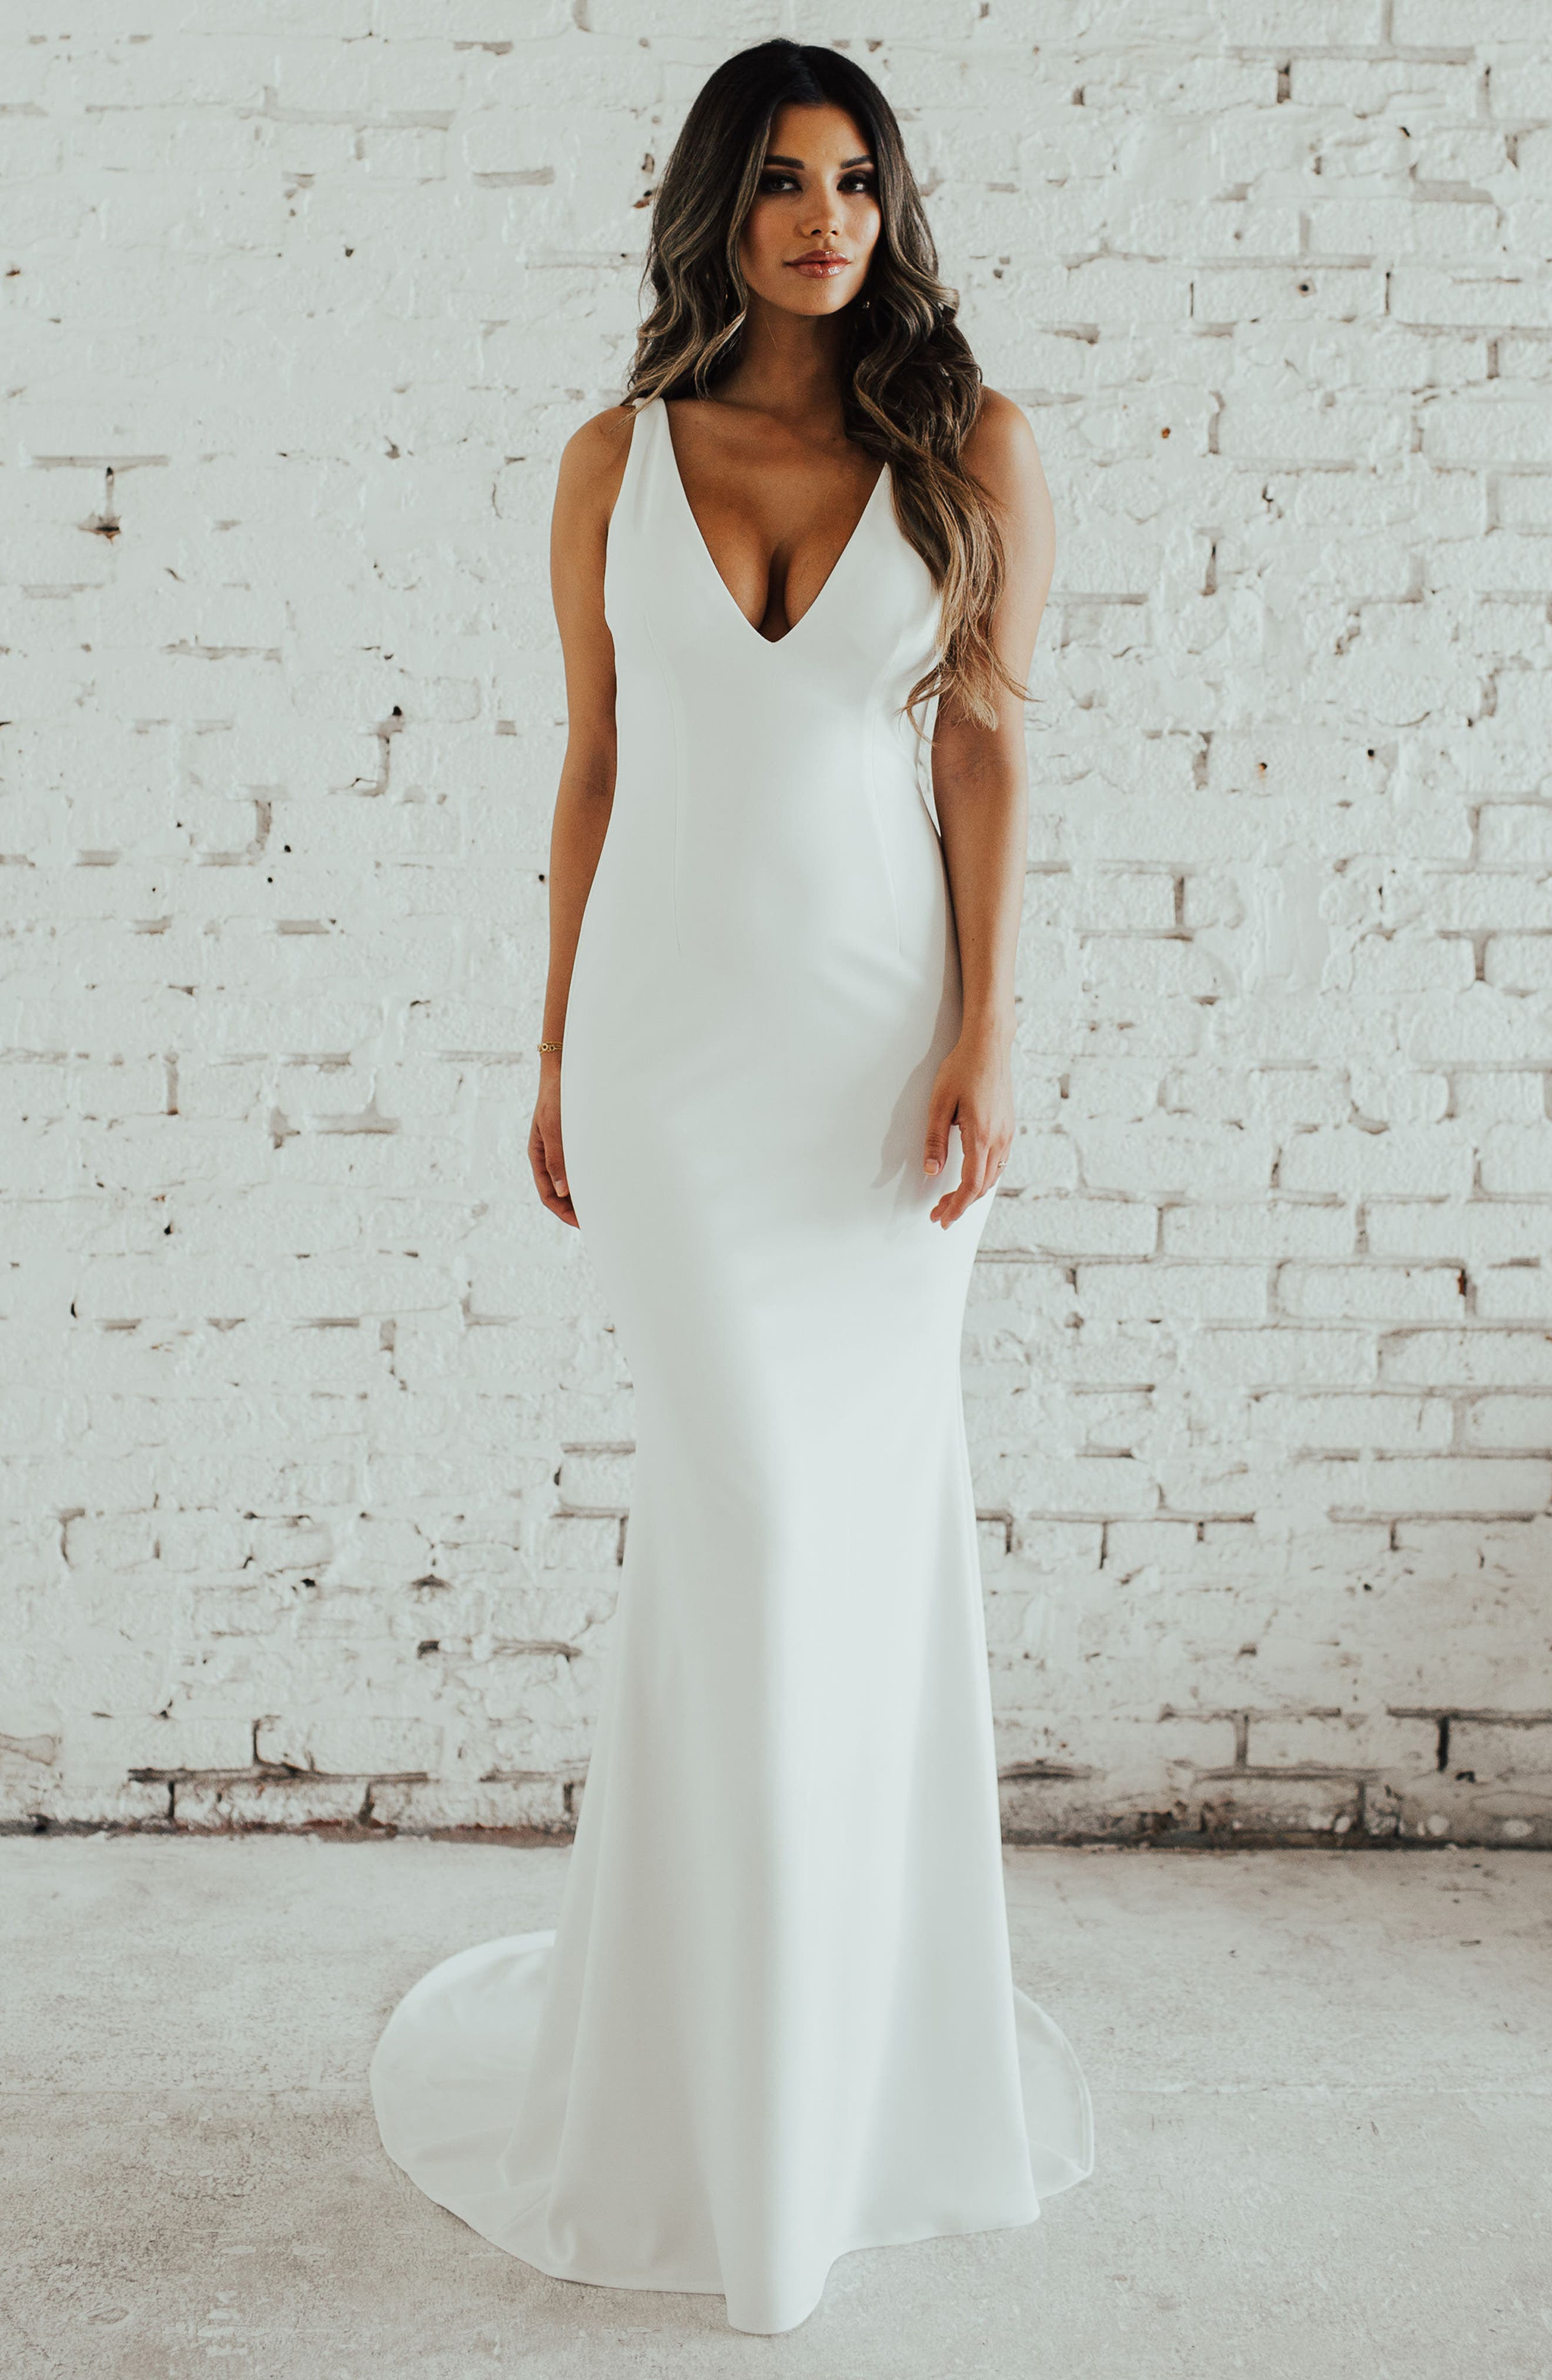 K'MIch Weddings - wedding planning - wedding dresses - affordable - Paloma Plunge Trumpet Gown - Nordstrom